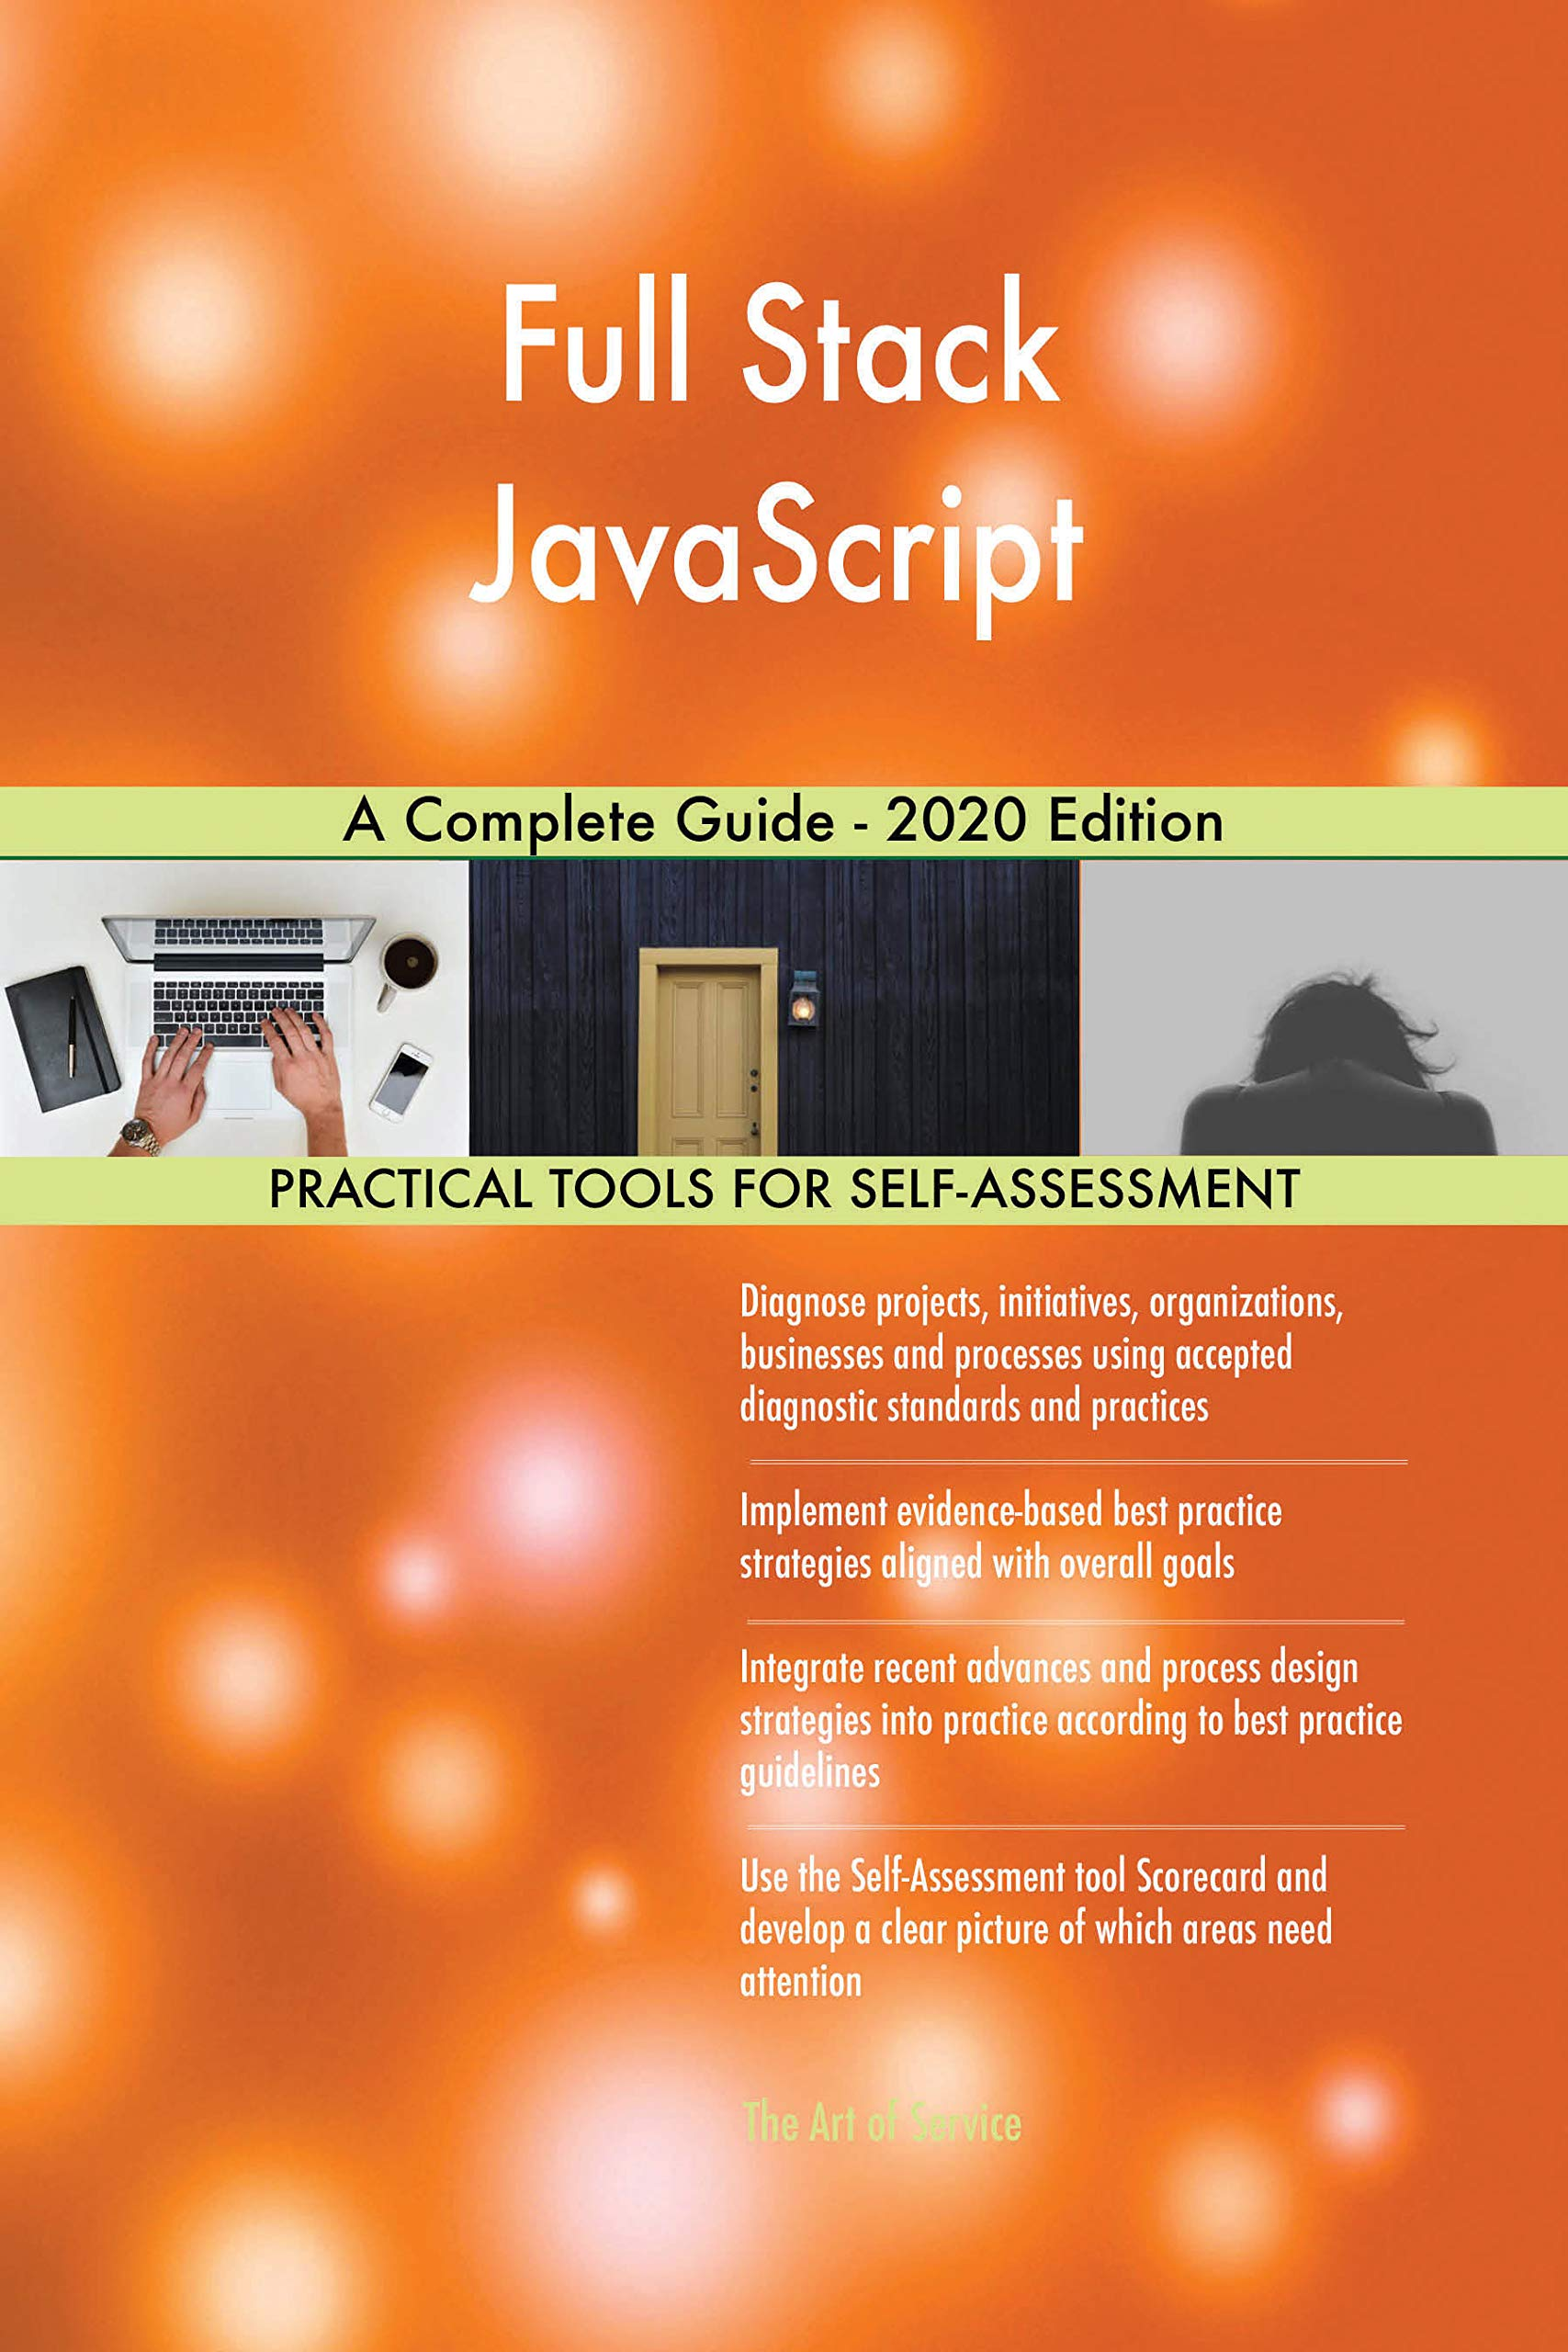 Full Stack JavaScript A Complete Guide - 2020 Edition